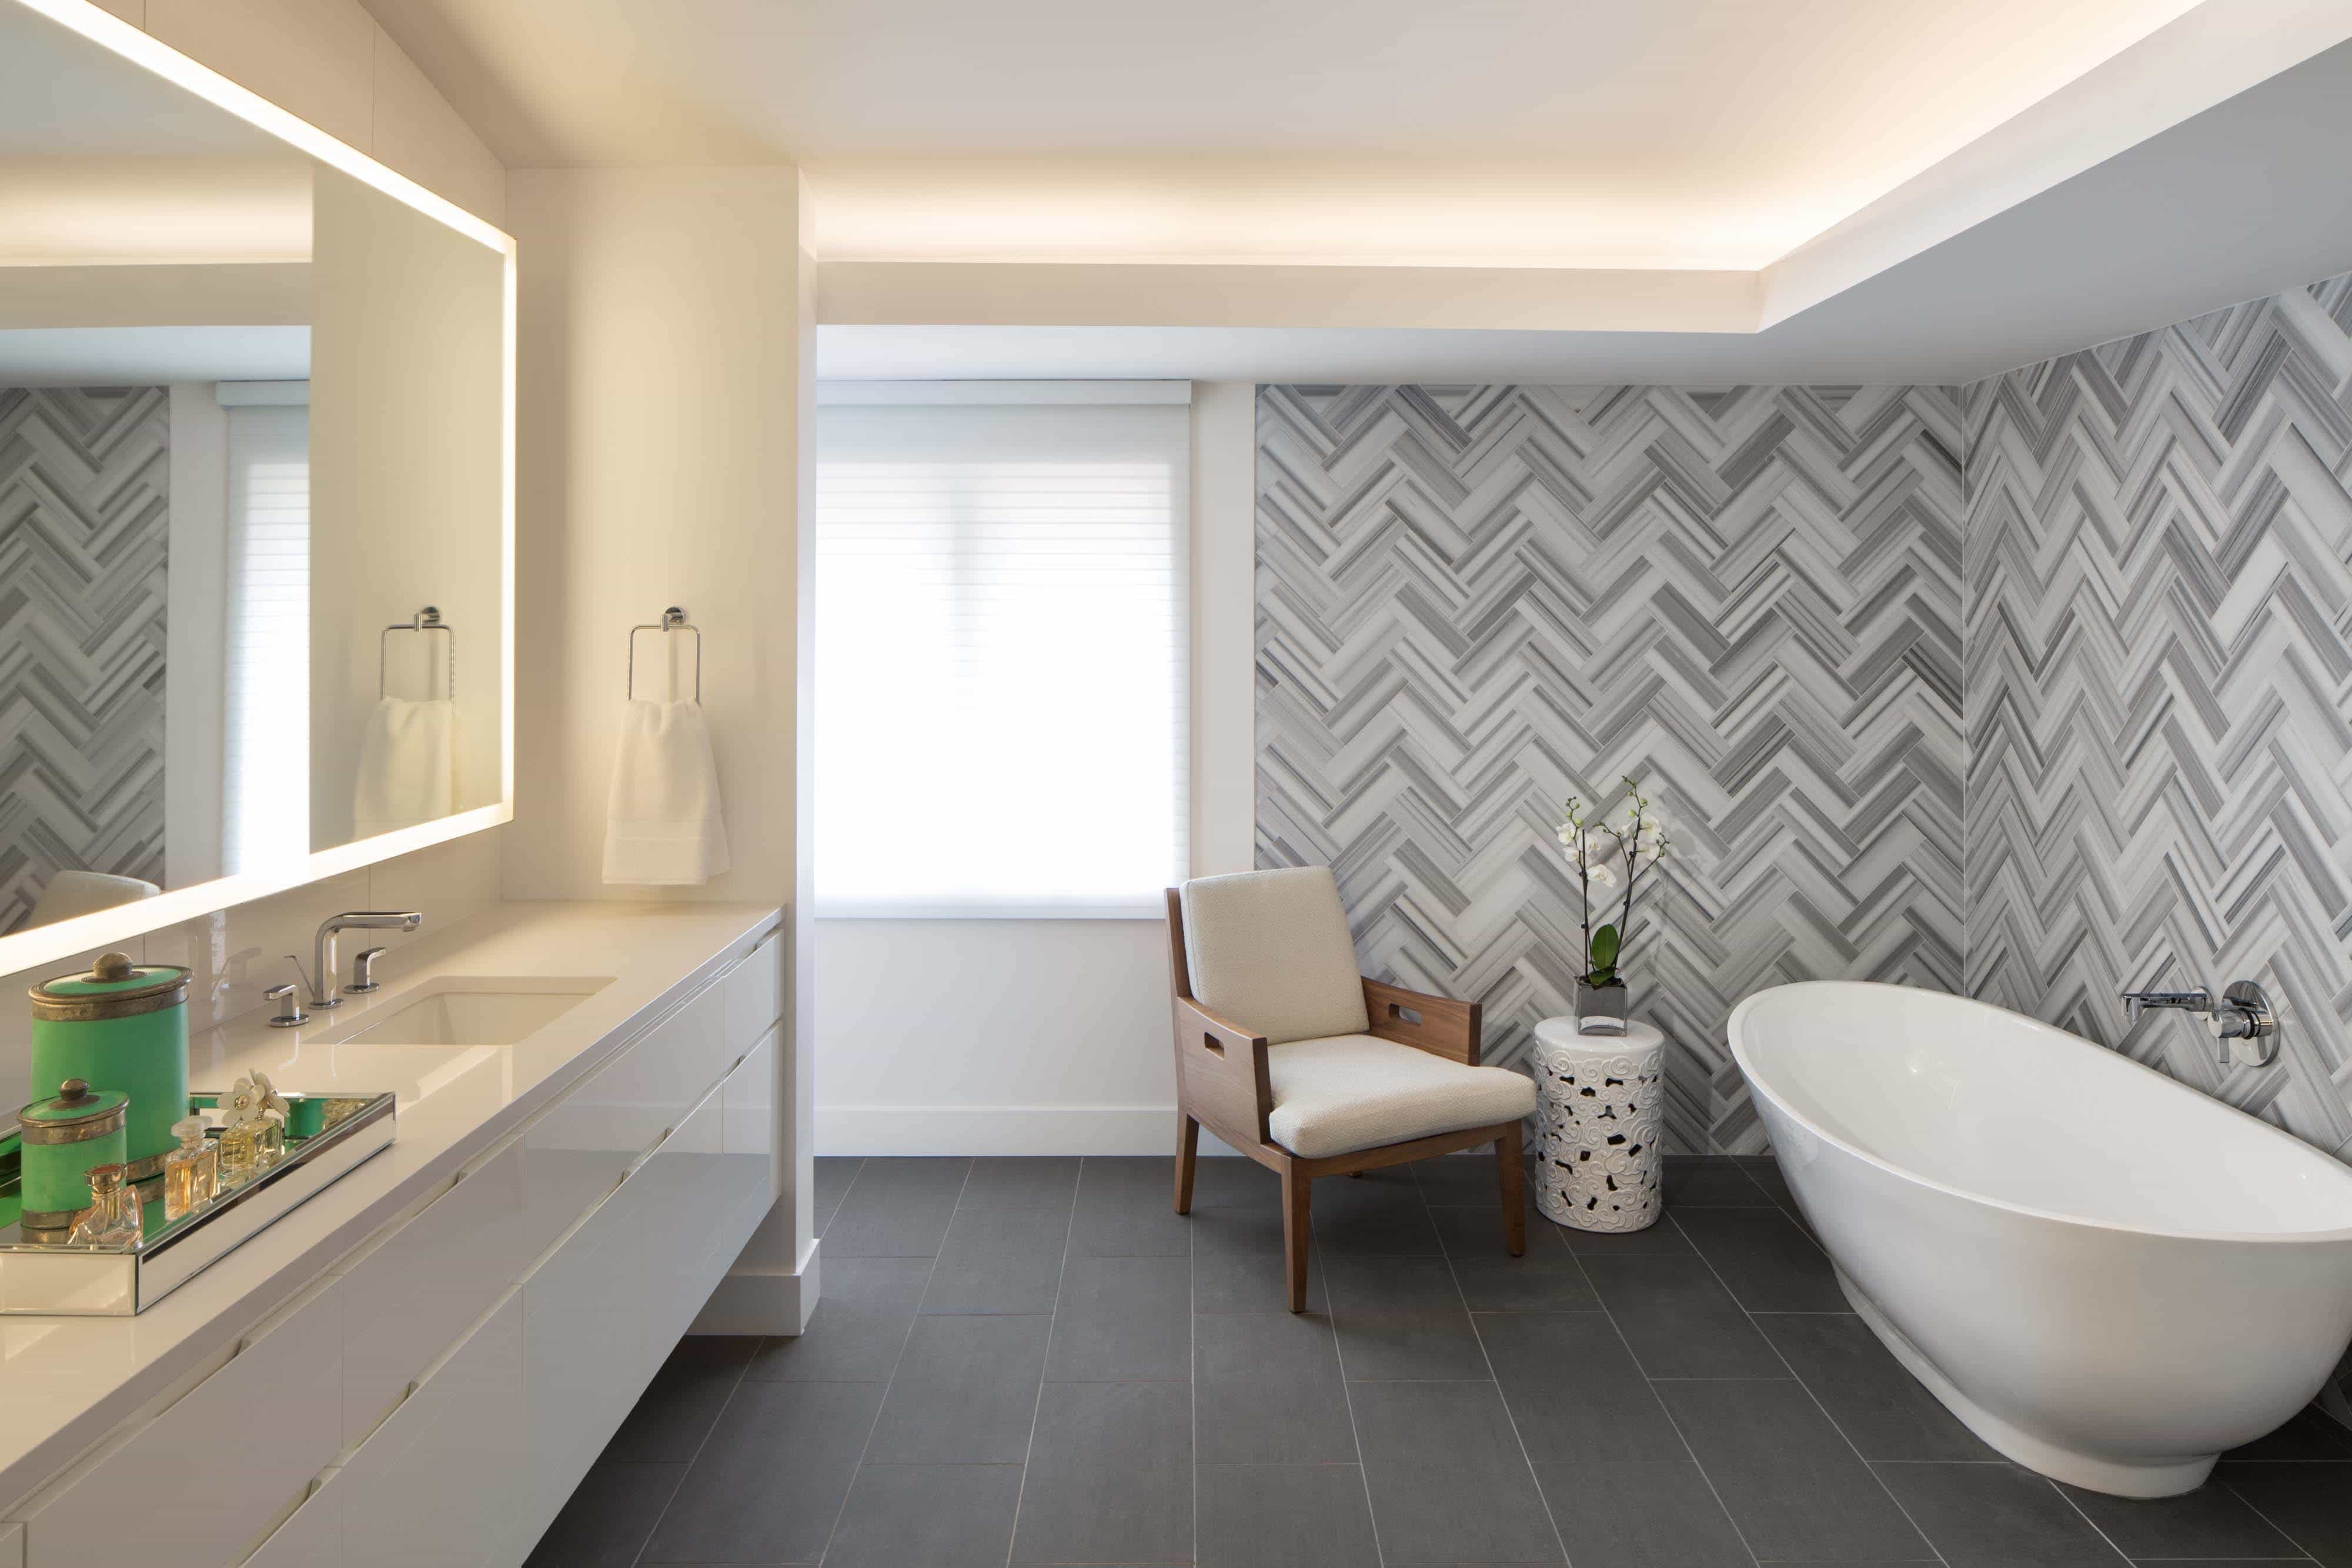 Funky Bathroom With Coral Geometric Tiled Wall (View 1 of 10)